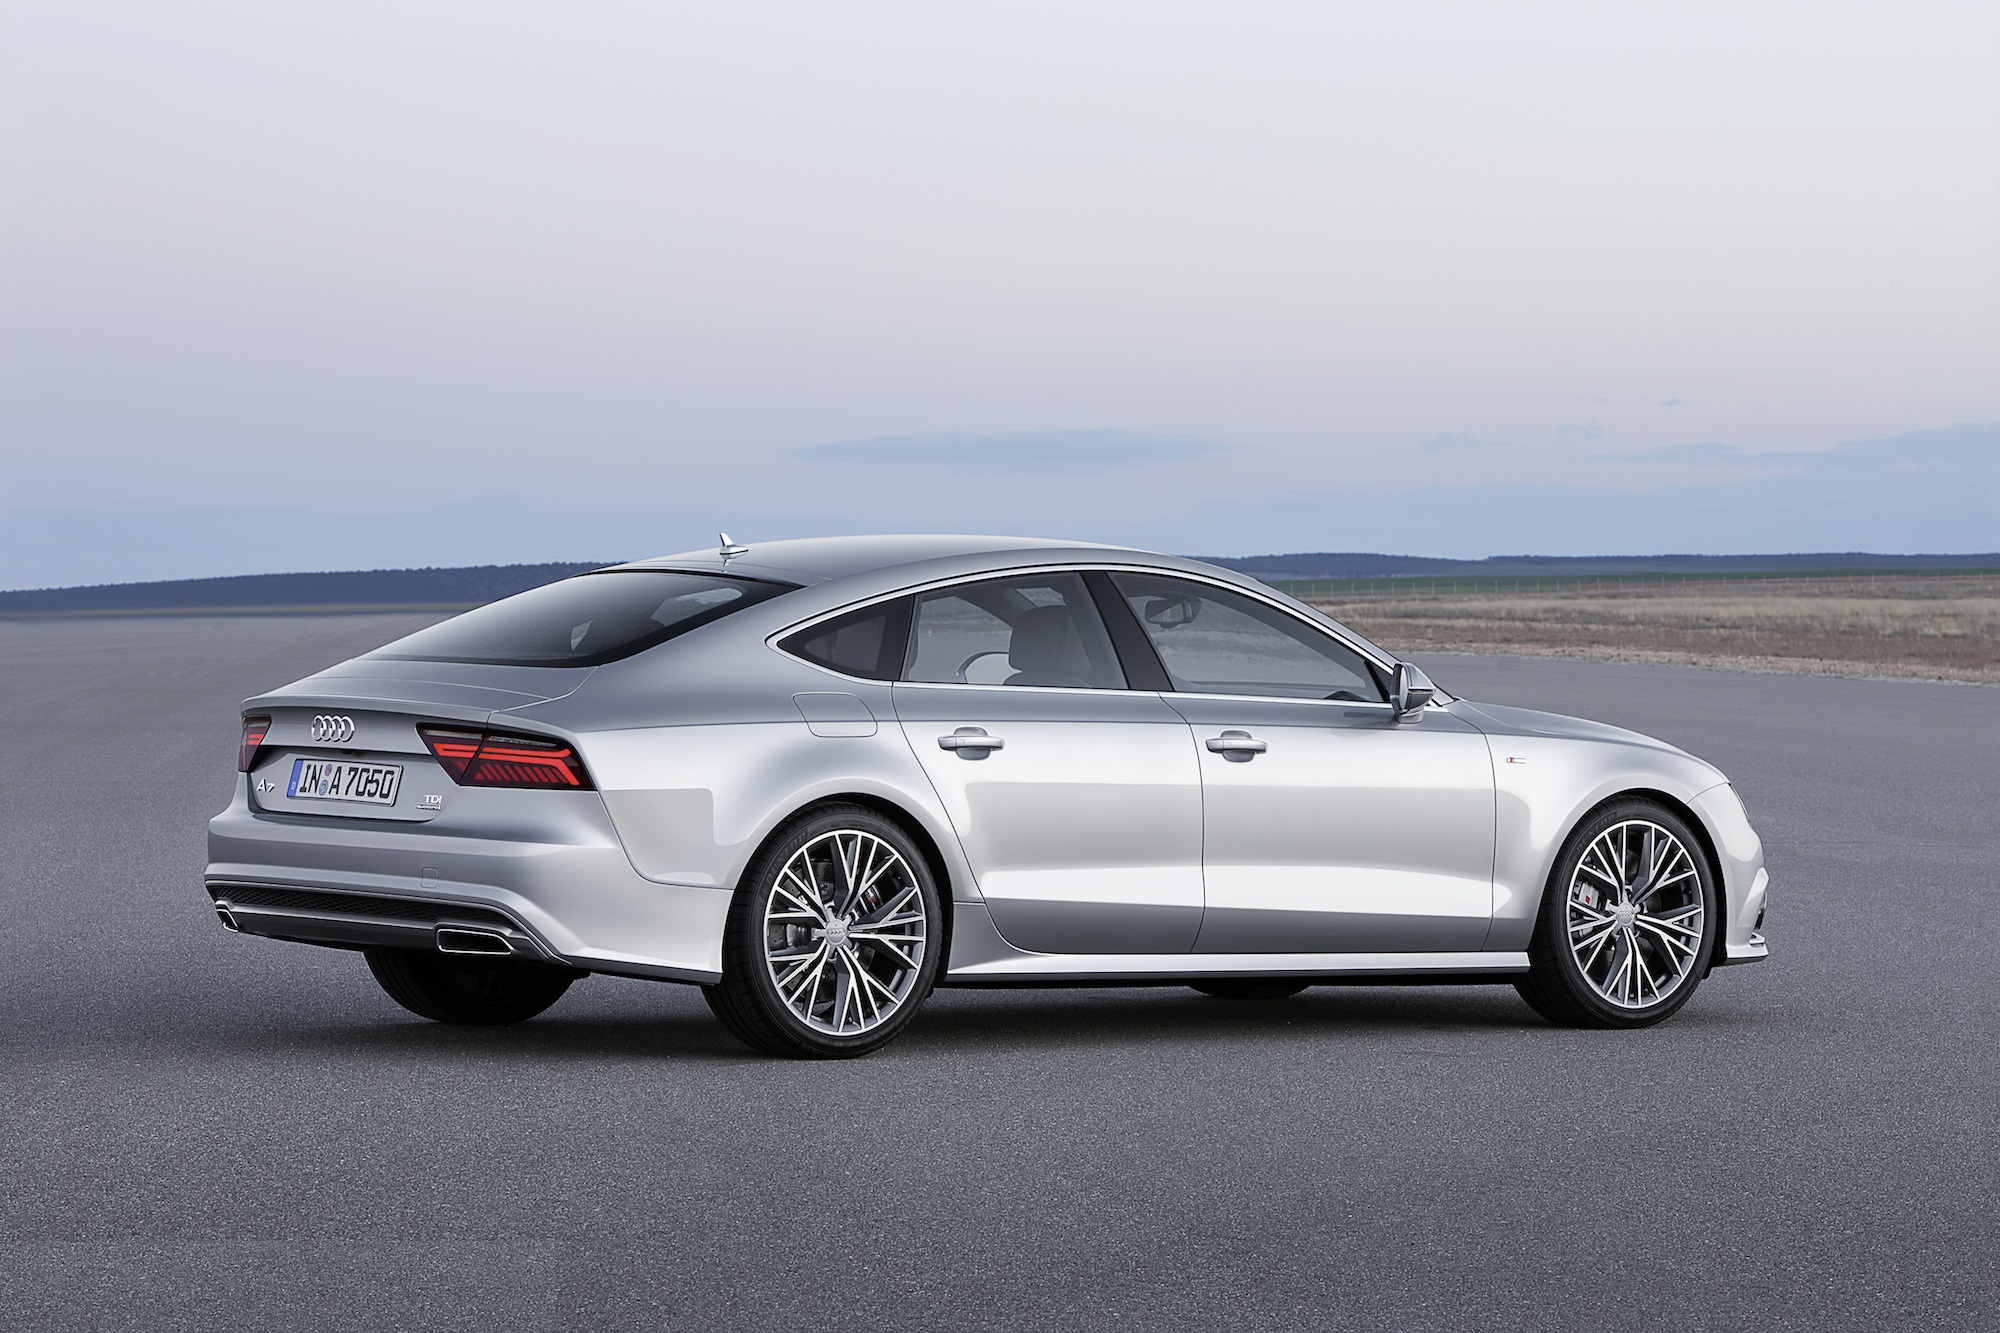 New York Car Lease Deals View Inventory Global Auto Leasing - Audi deals